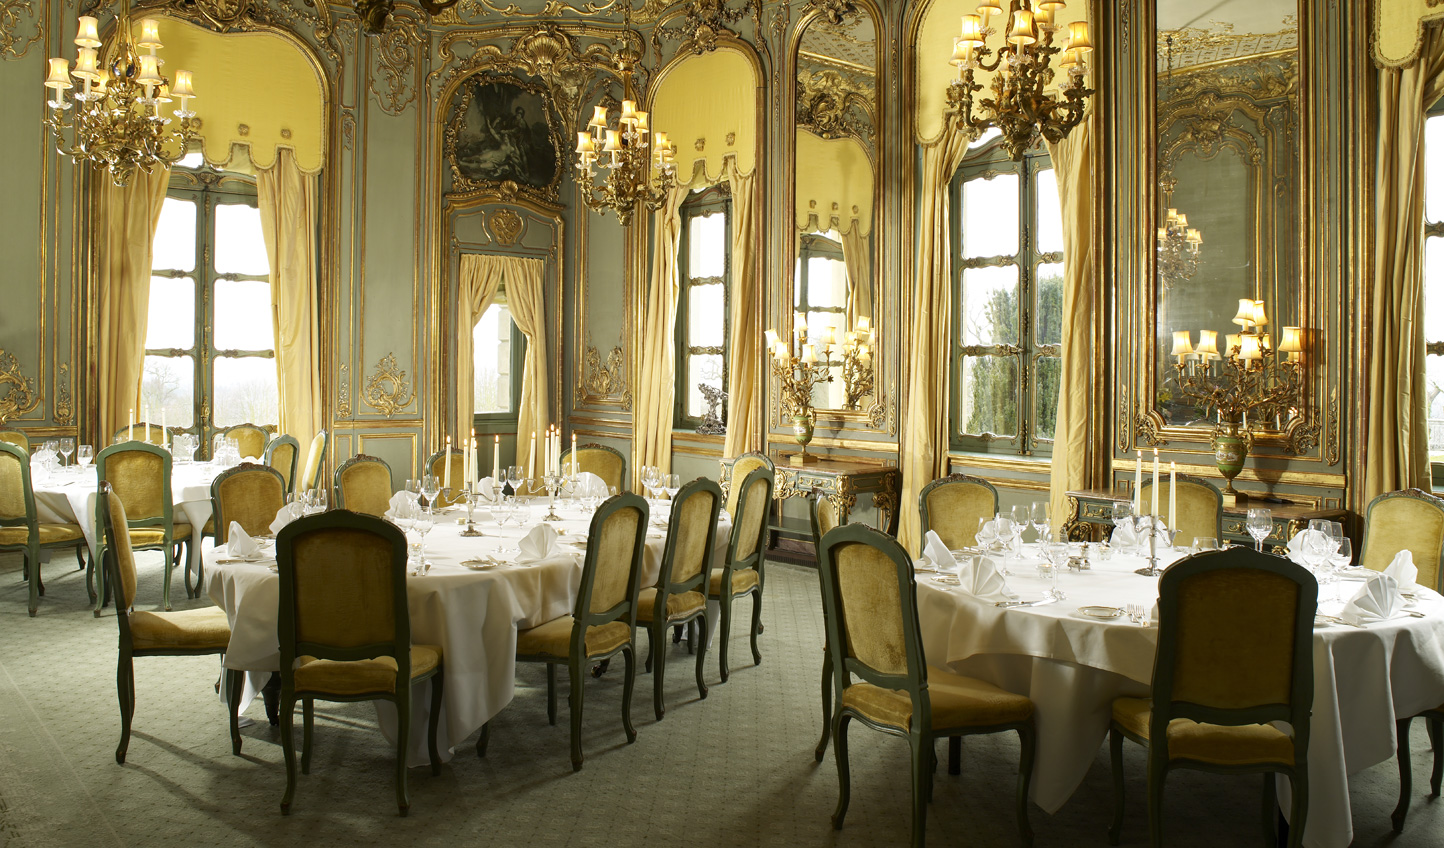 17th century opulence whilst you dine